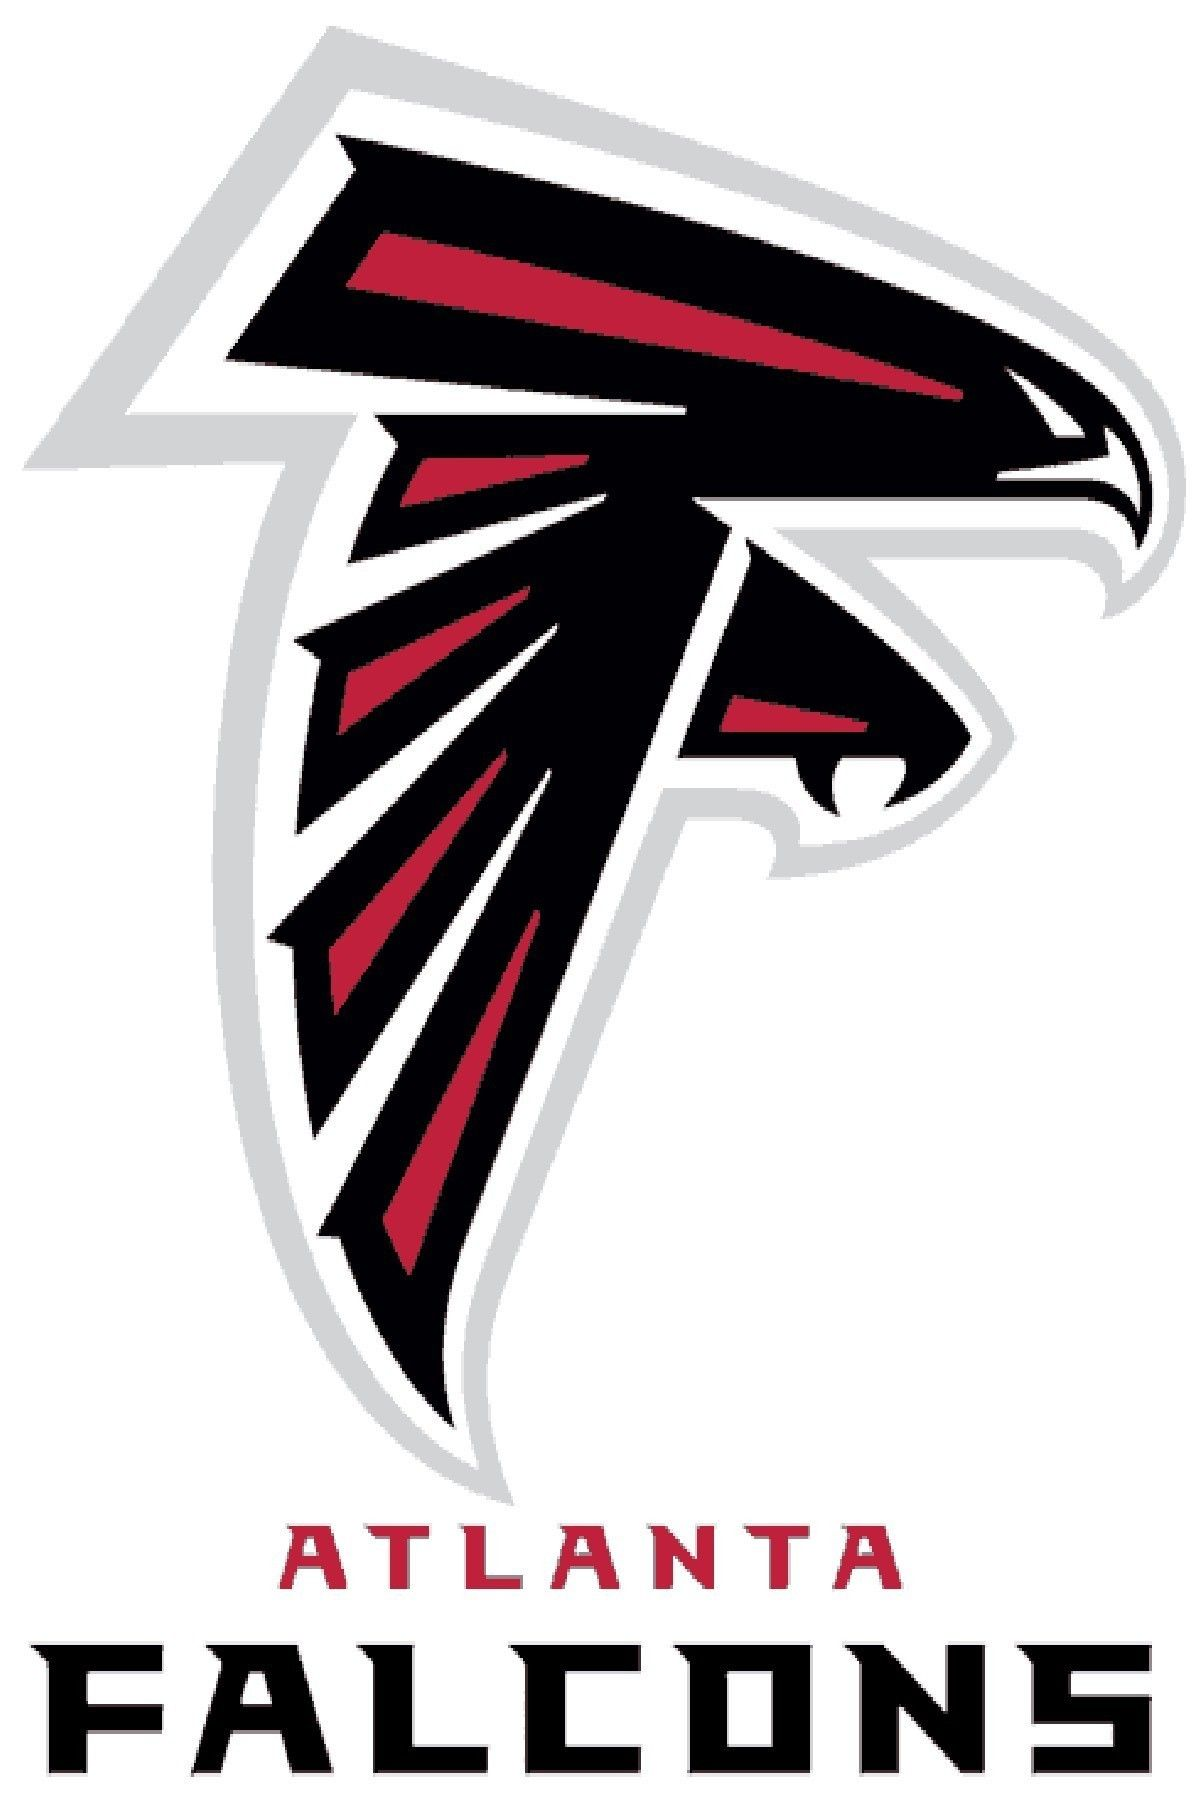 Logo Atlanta Falcons Logo Atlanta Falcons Football Atlanta Falcons Decal